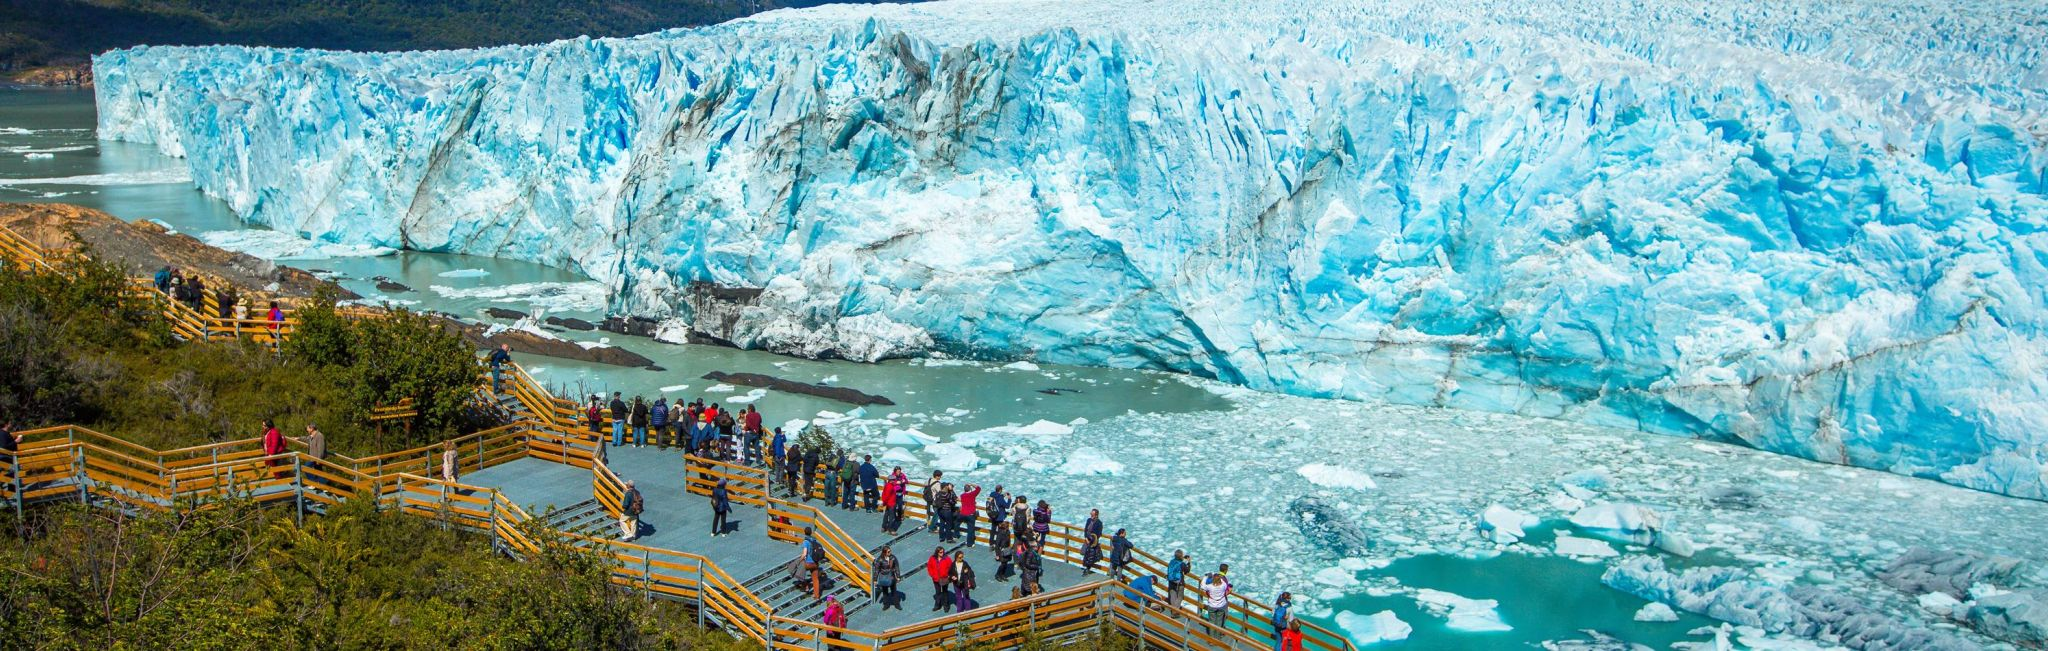 Patagonia tours vacations luxury travel packages and for Getaway deals near me